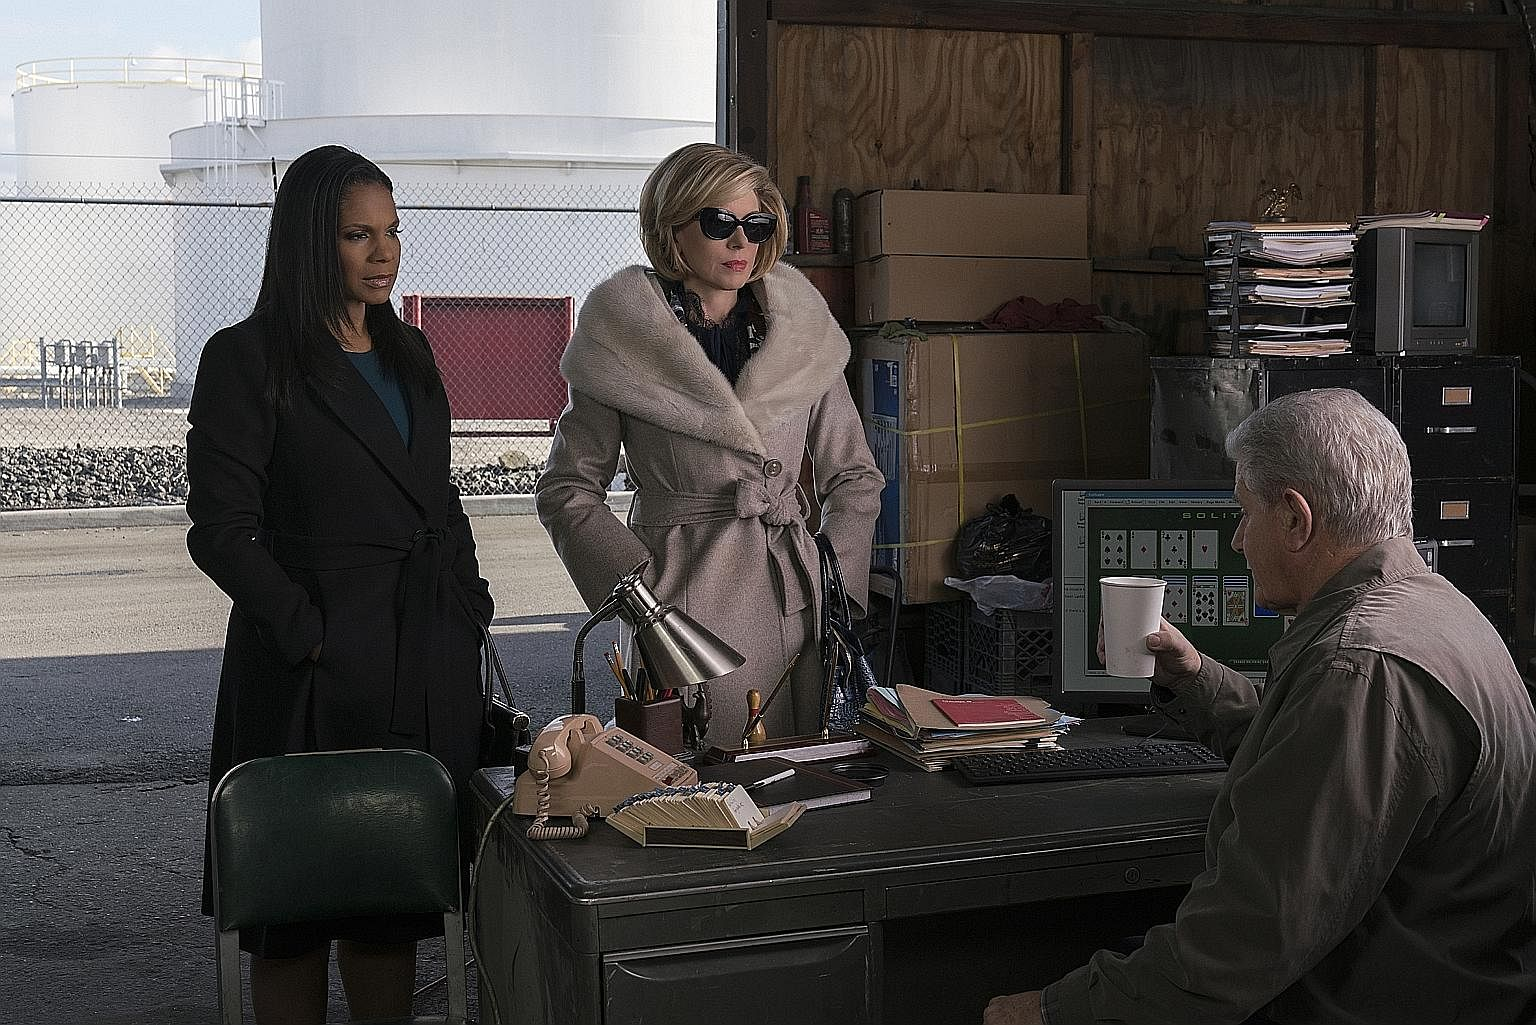 The Good Fight stars Audra McDonald (above left) and Christine Baranski (above centre), while The Split features Nicola Walker (left).